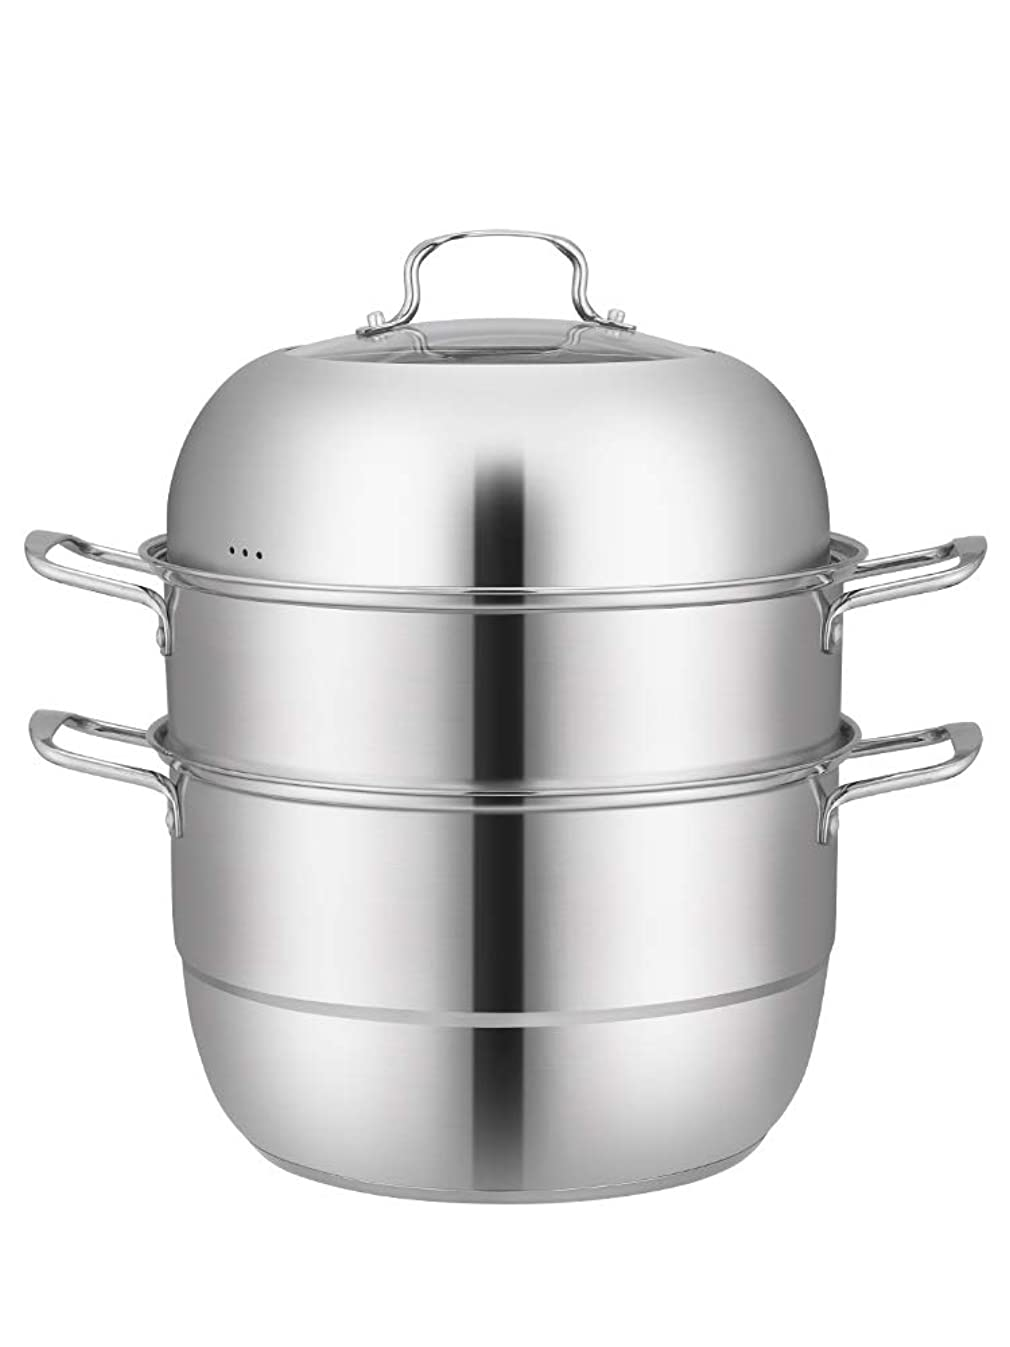 Beeiee Stainless Steel 3-Tier/Layer 11 inch Diameter Steamer cooking pot, Rice cooker, Double Boilder, stack, steam soup pot and steamer Work with Gas, Electric and Grill stove top (3-Tier 11